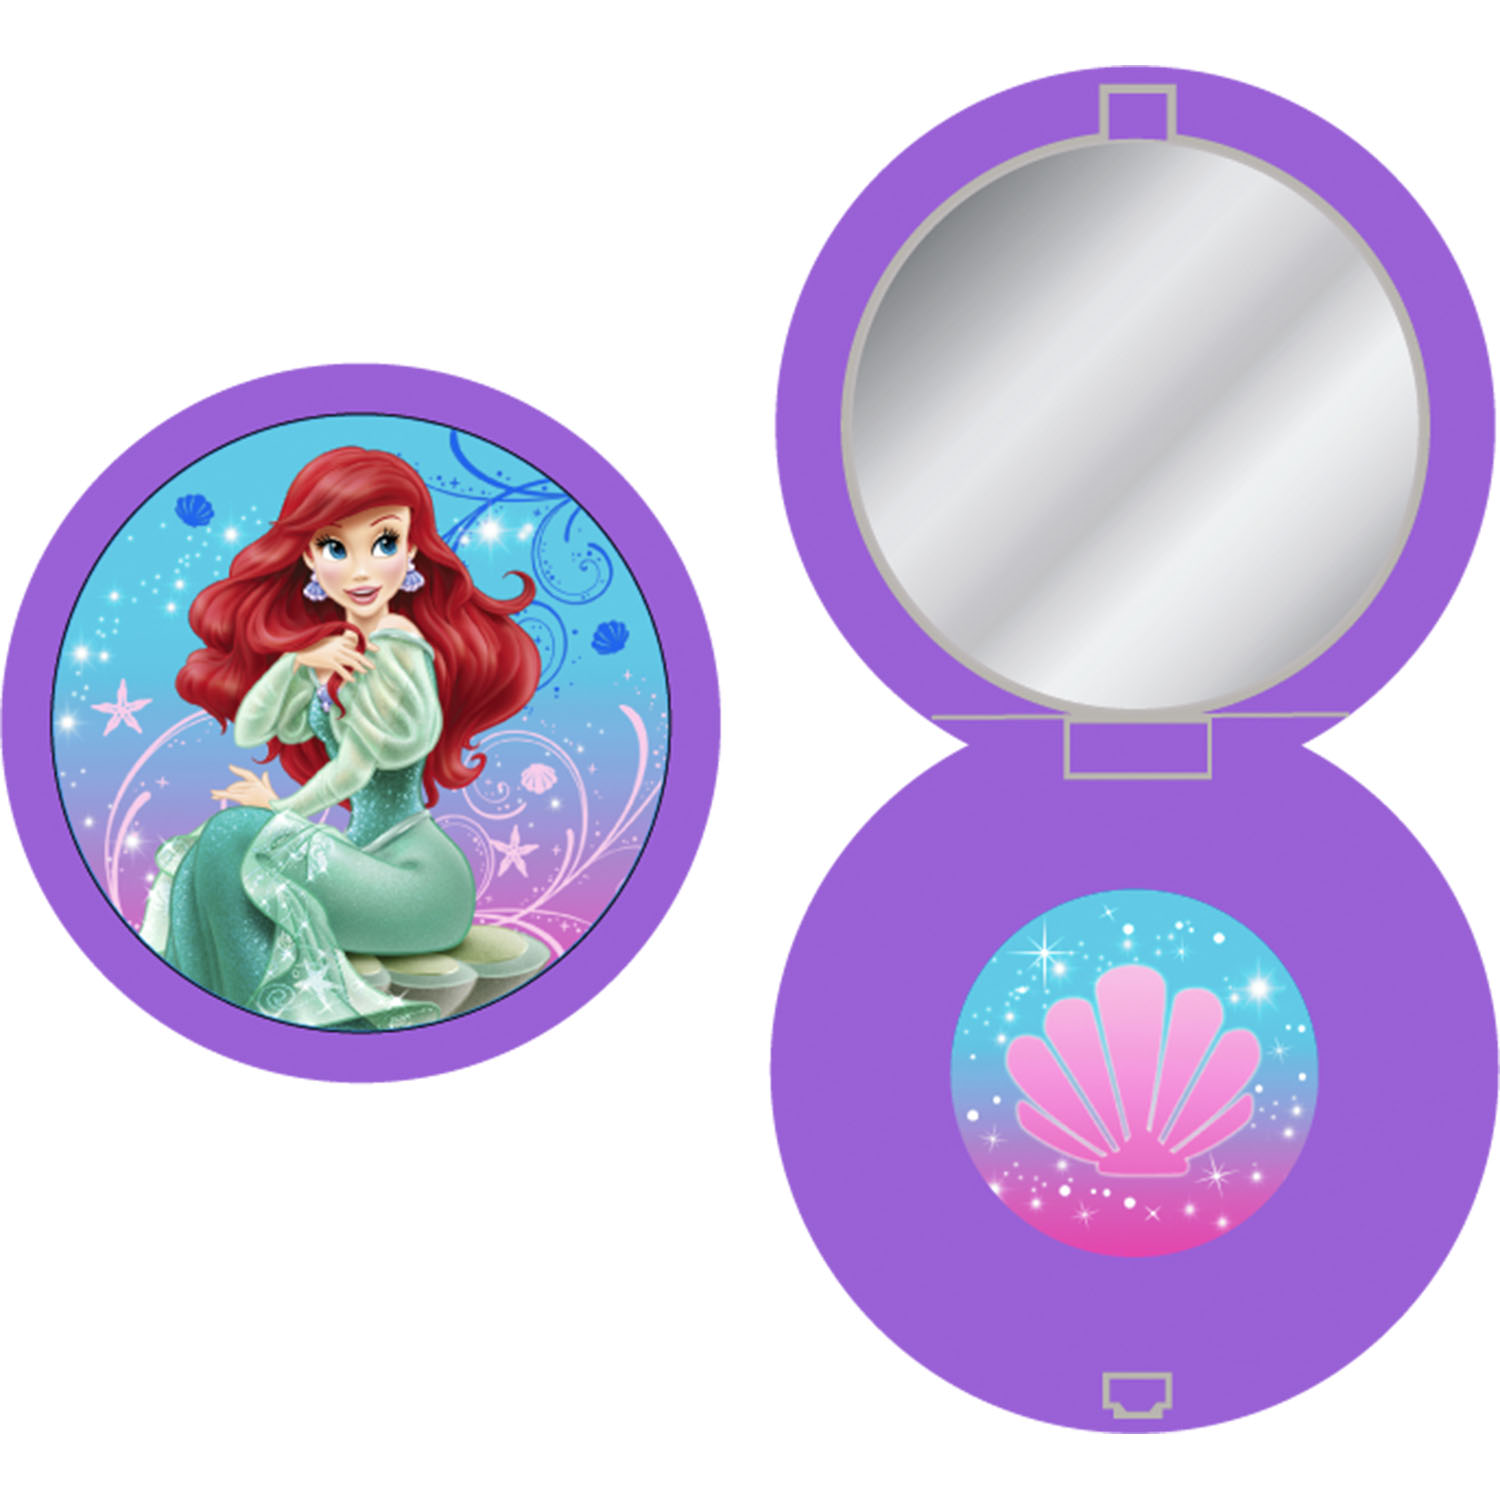 The Little Mermaid Party Supplies - Sparkle™ Compact Mirrors at ToyStop